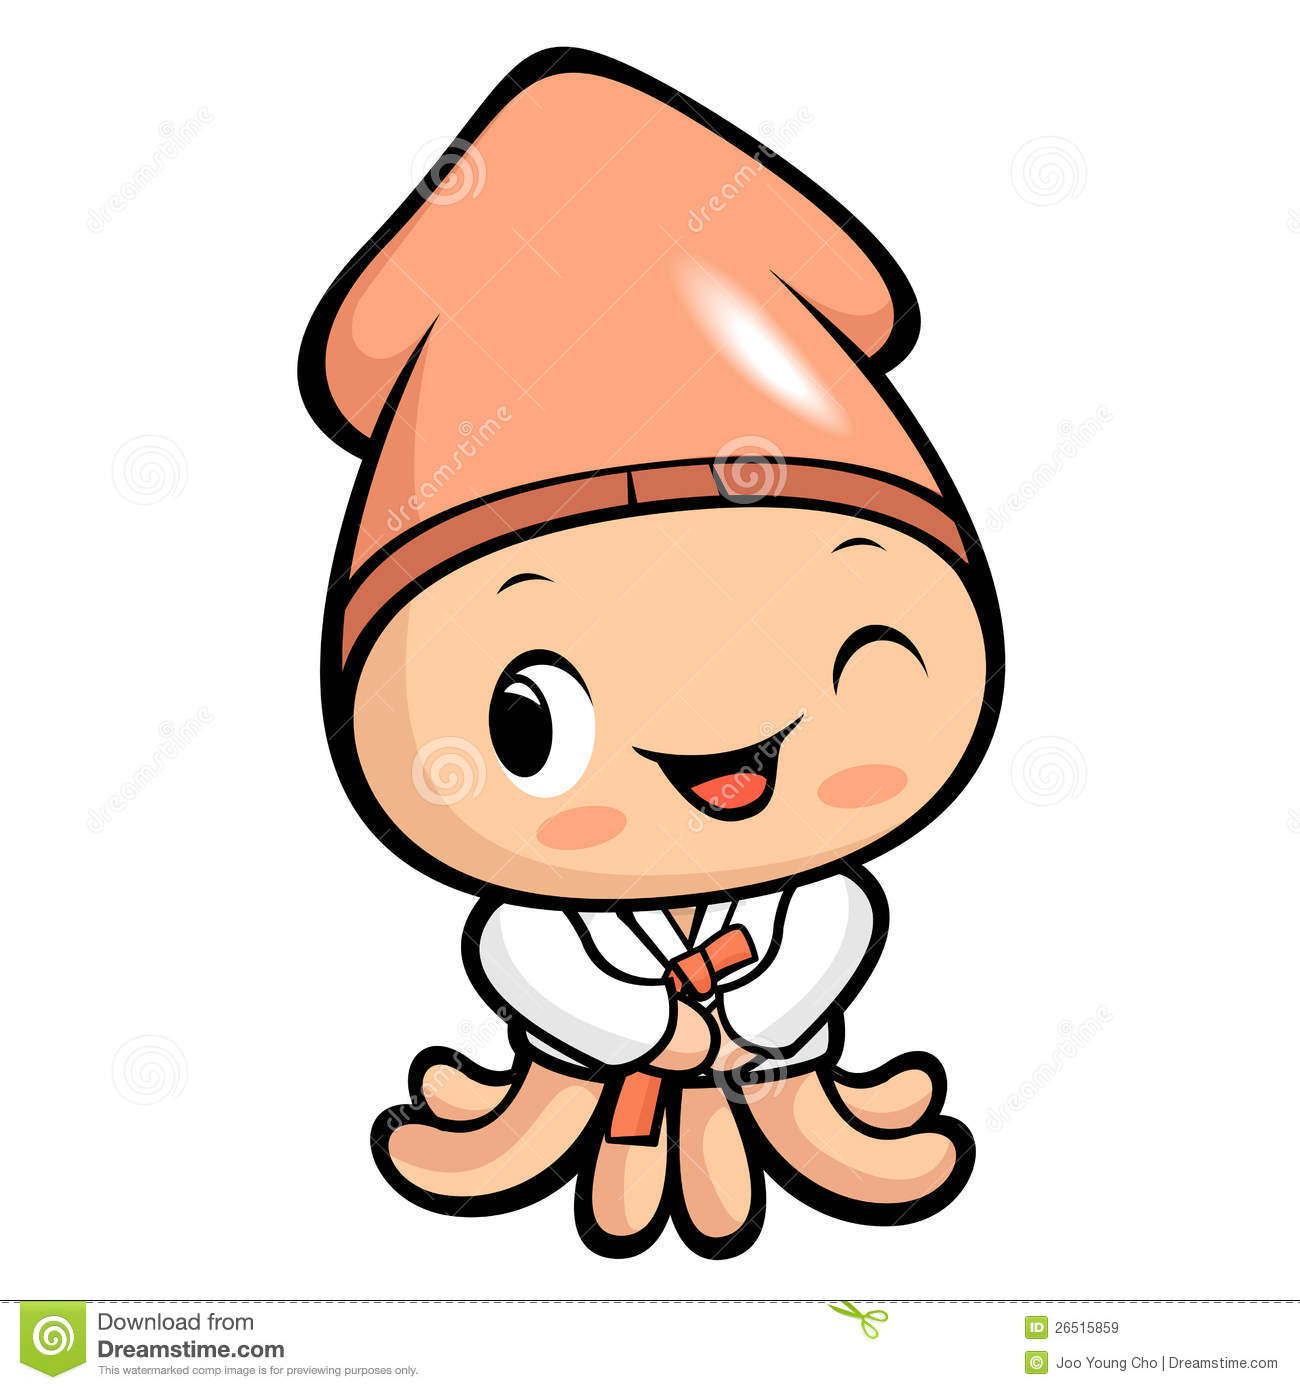 Happy squid character royalty free stock images image 26515859